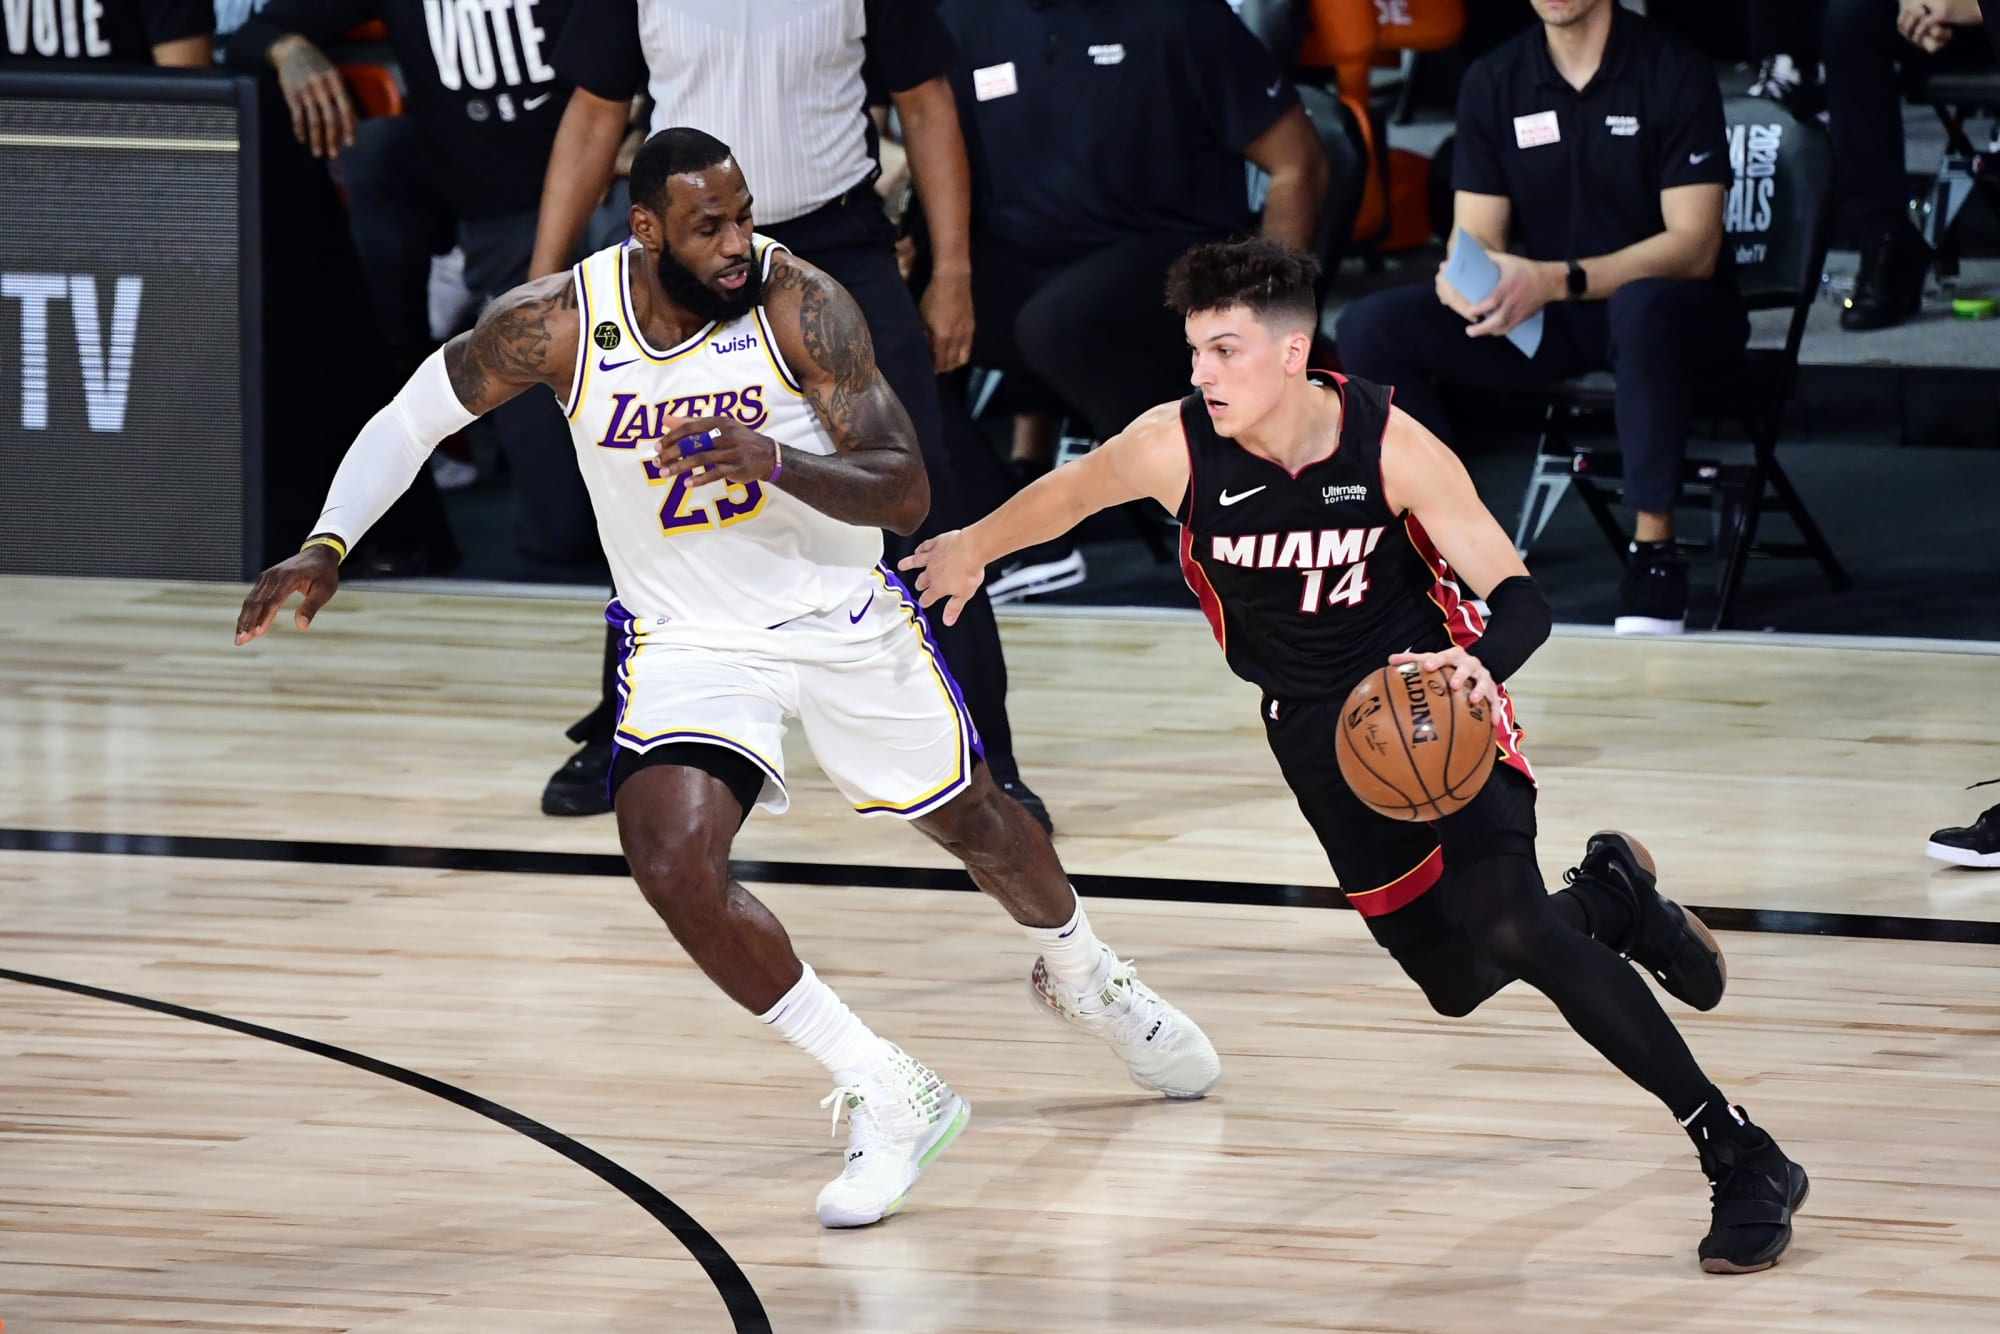 Heat vs Lakers NBA live stream reddit for Game 4 of the Finals